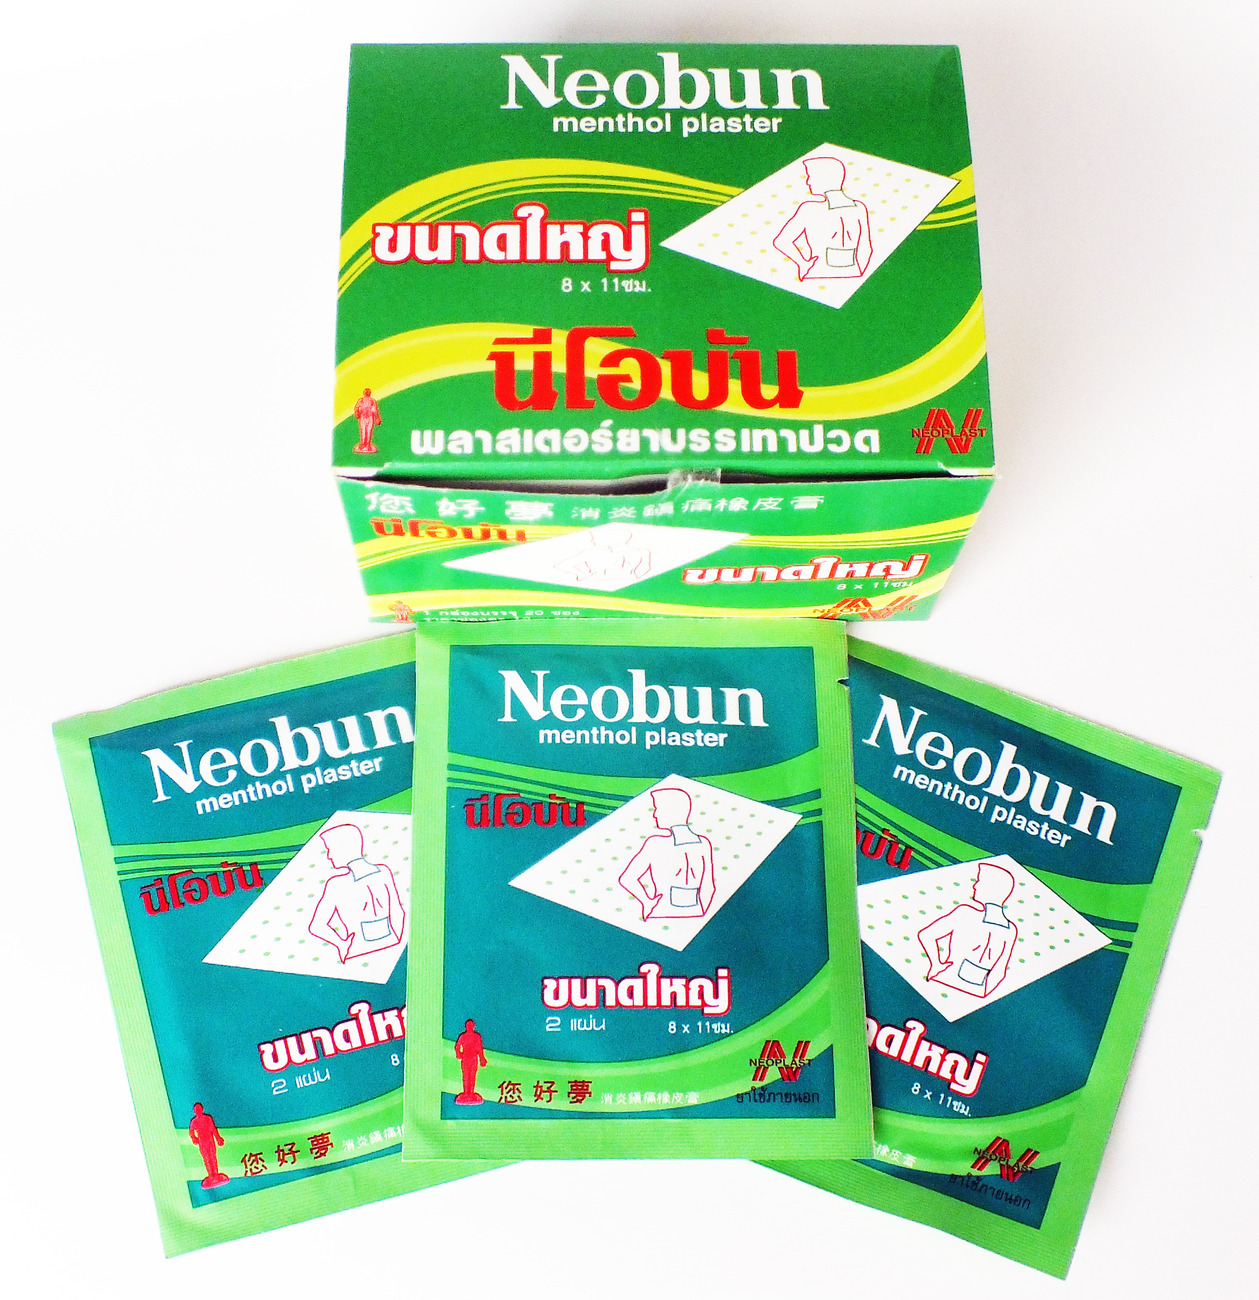 how to use neobun menthol plaster